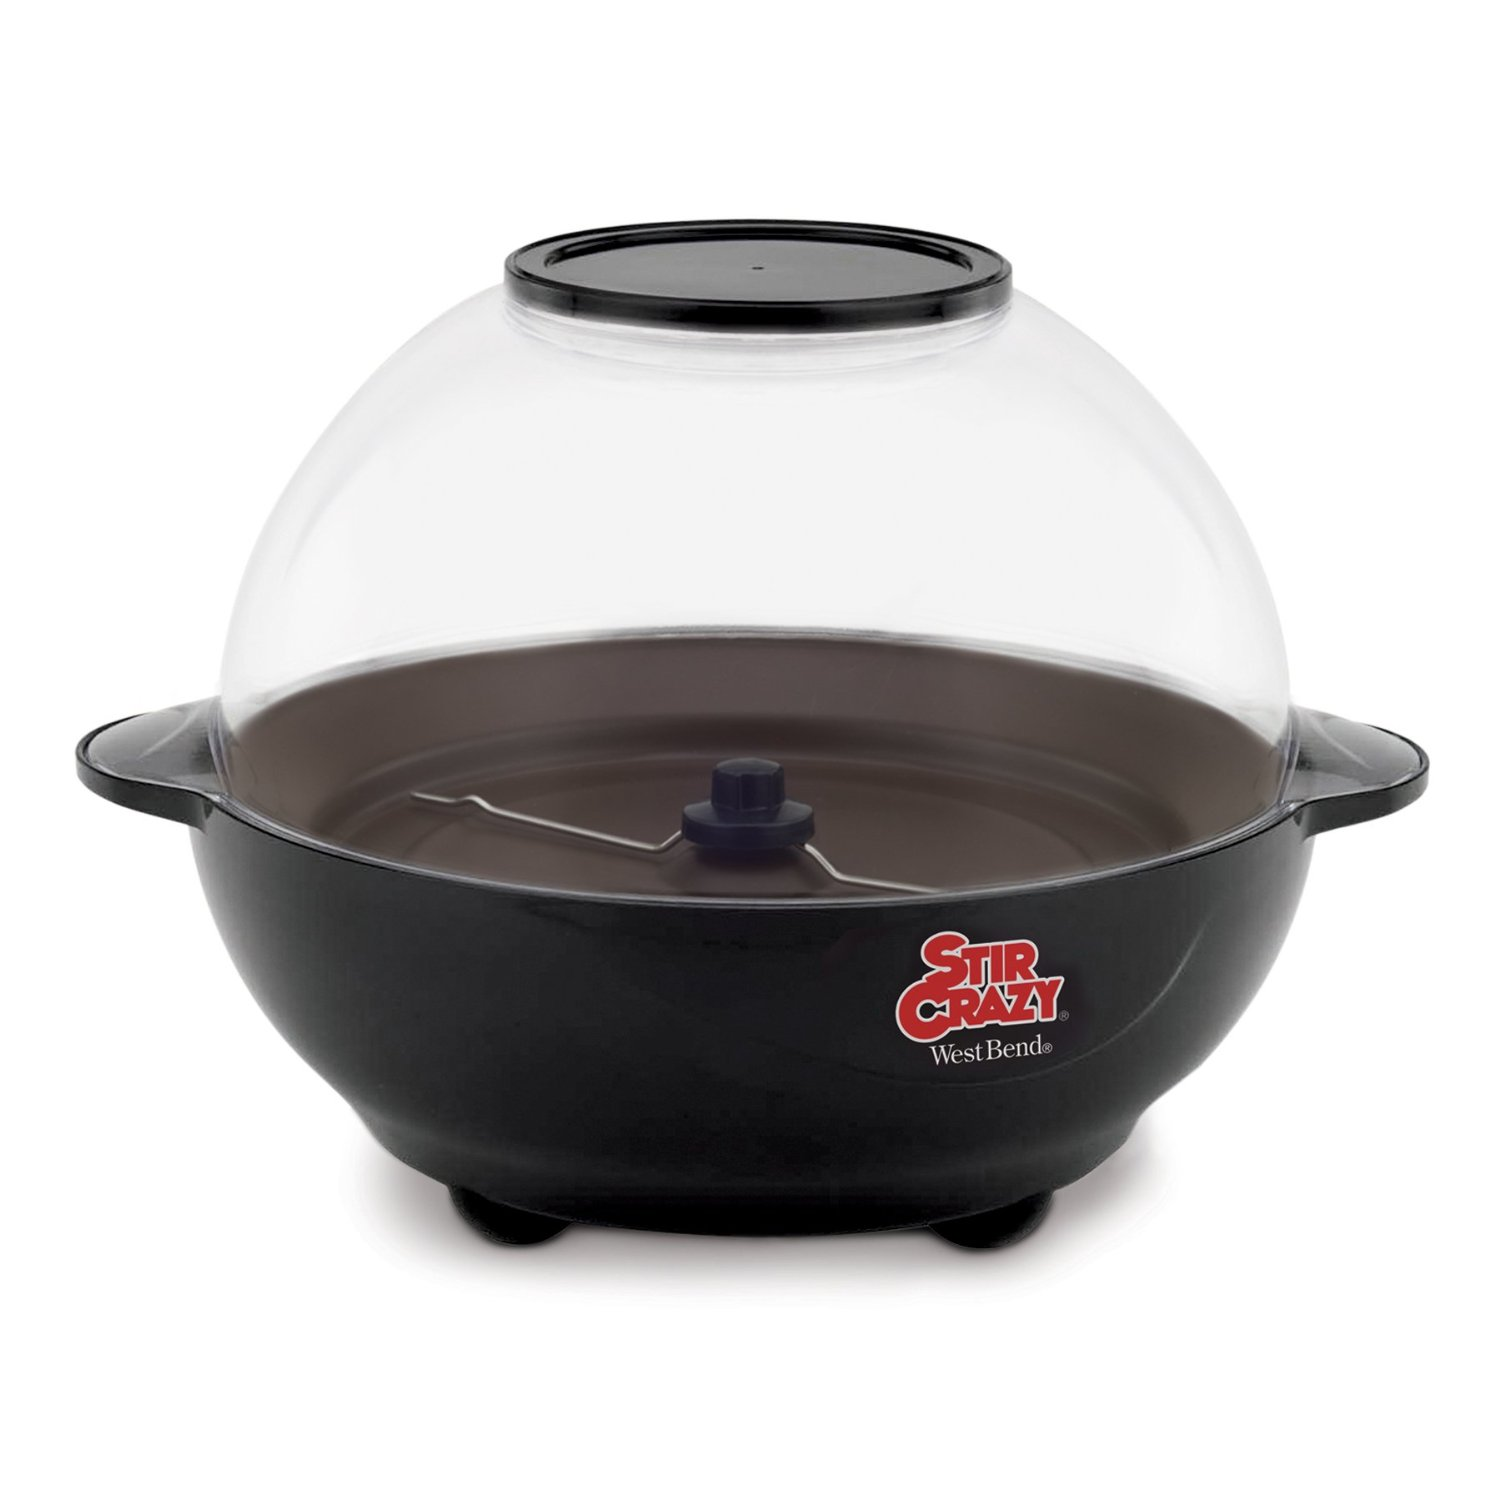 West Bend 82306 Stir Crazy 6-Quart Electric Corn Popper